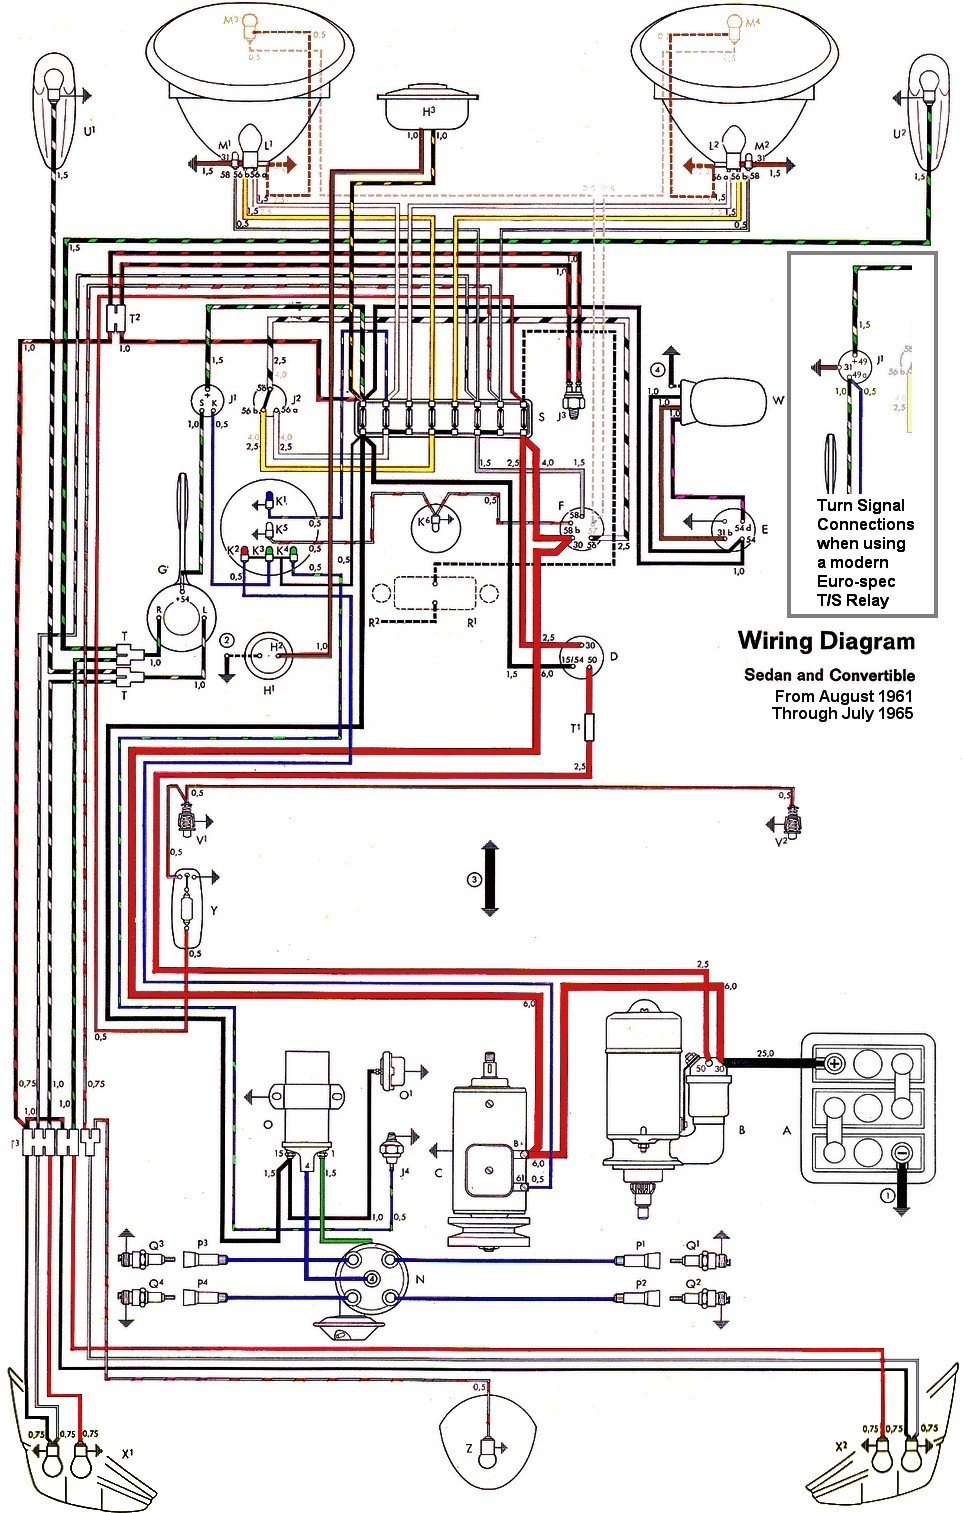 bug_62 65withinset thesamba com type 1 wiring diagrams vw beetle wiring diagram at virtualis.co